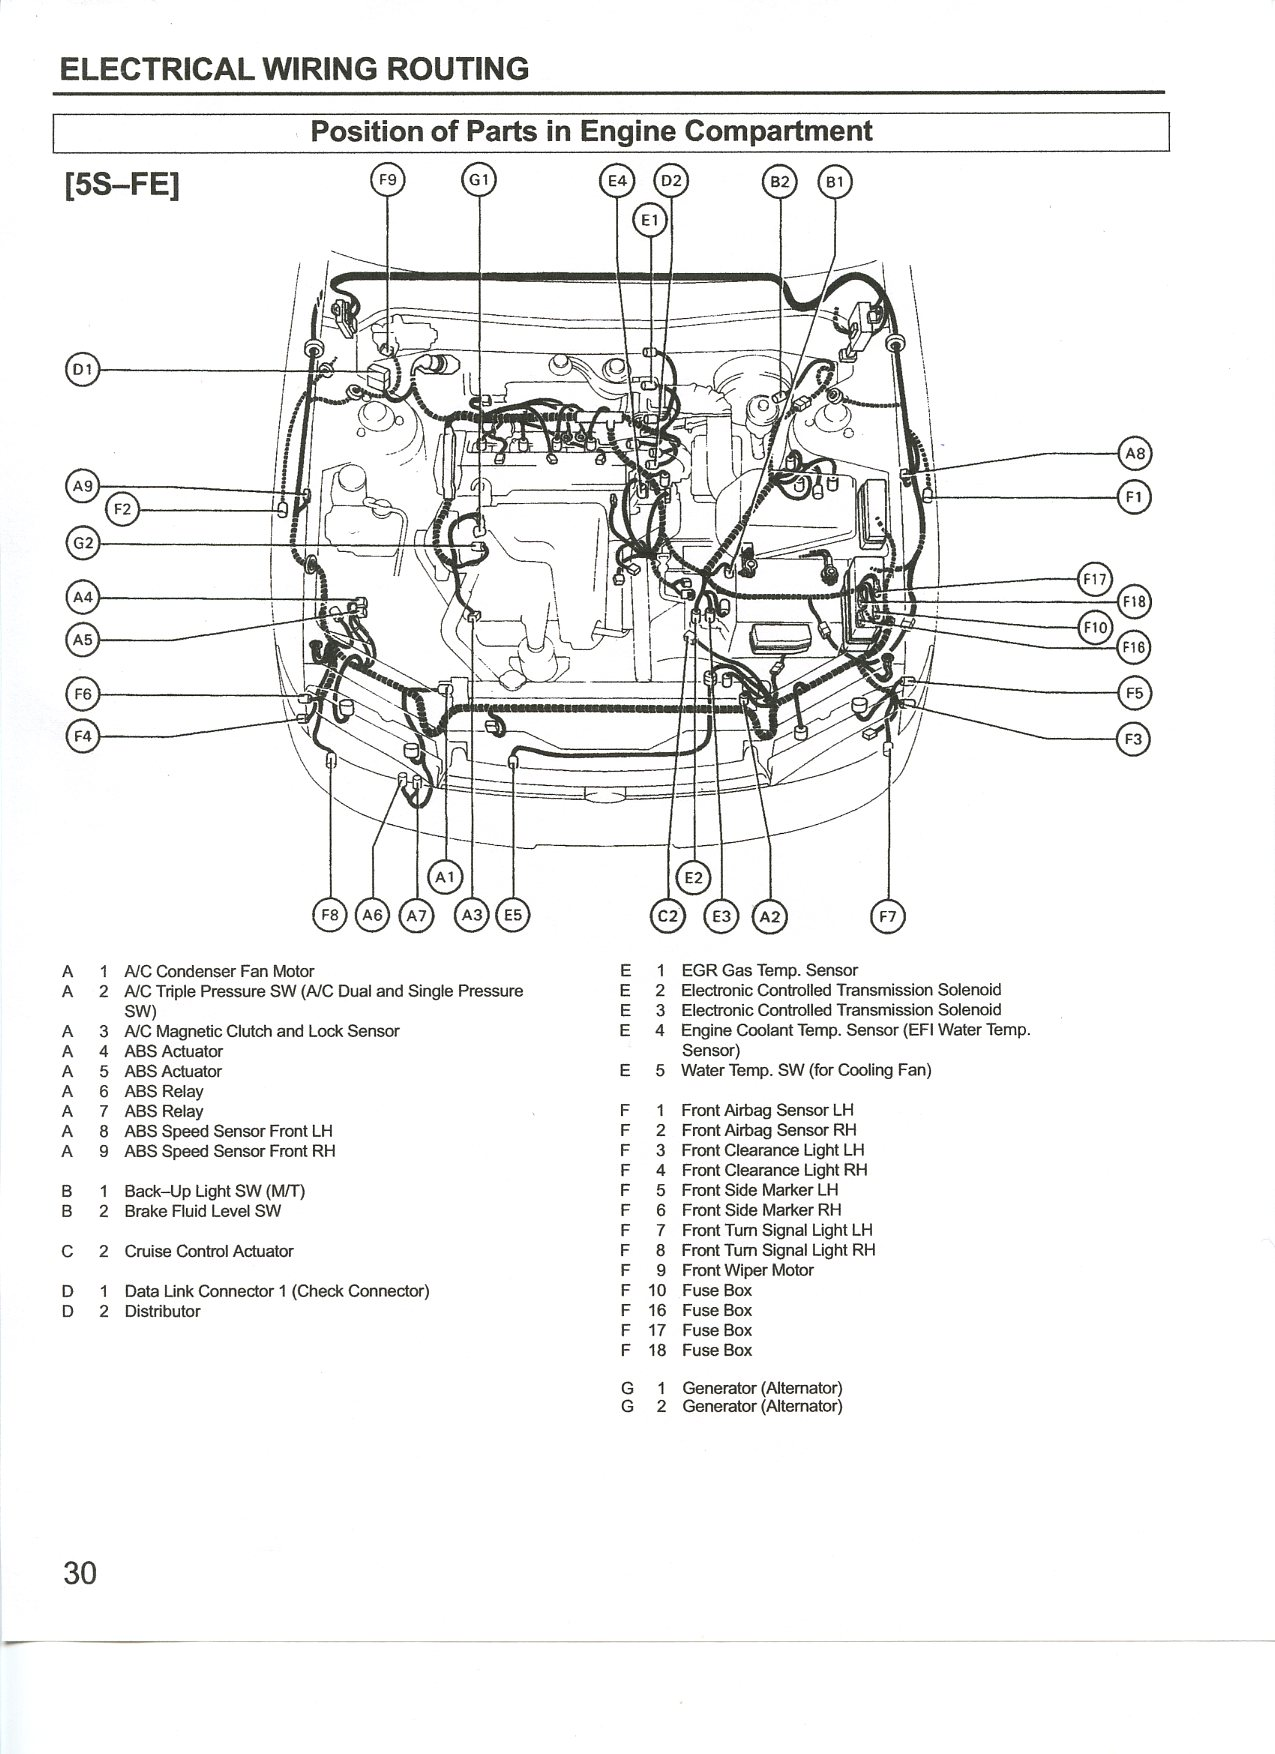 2002 toyota camry air conditioning wiring diagram html